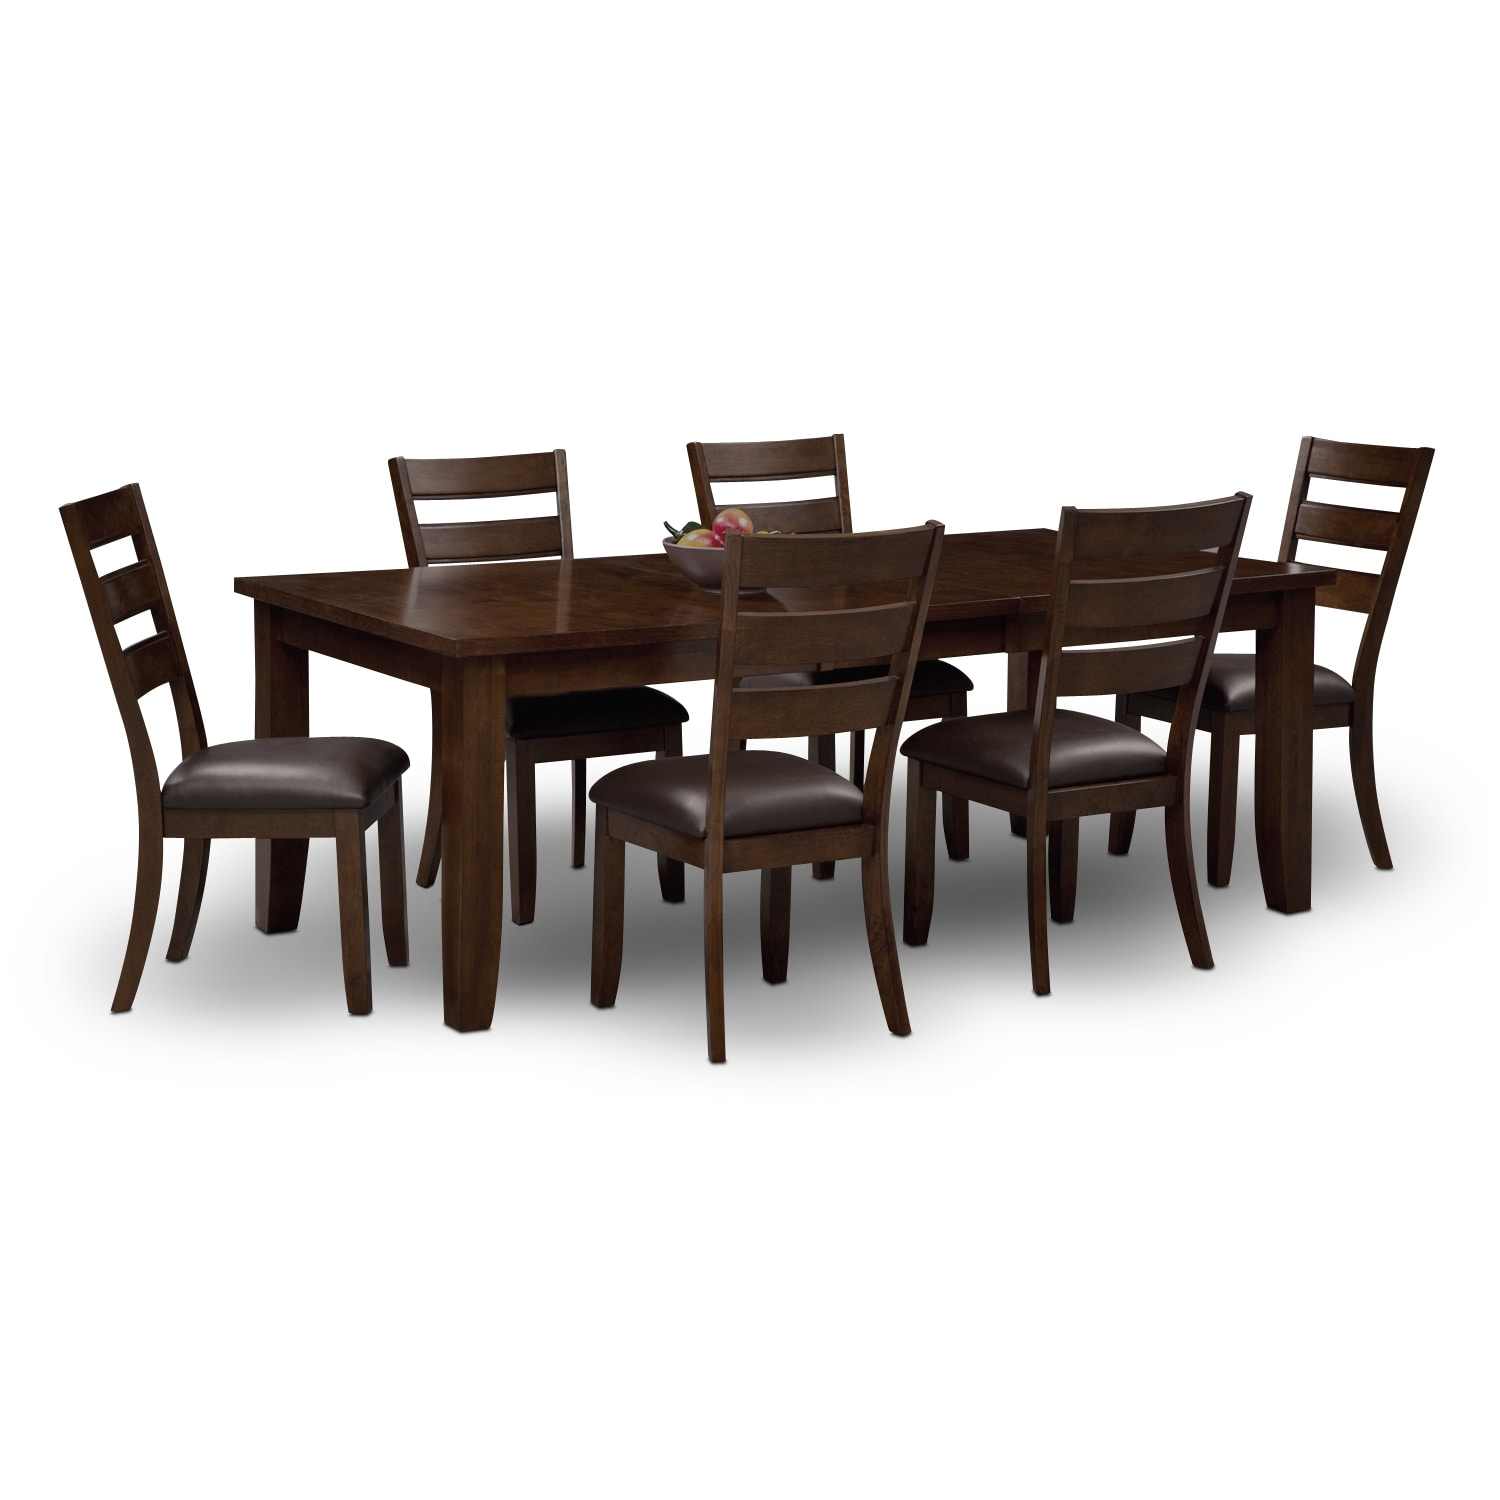 Room And Board Dining Chairs: Abaco Table And 6 Chairs - Brown